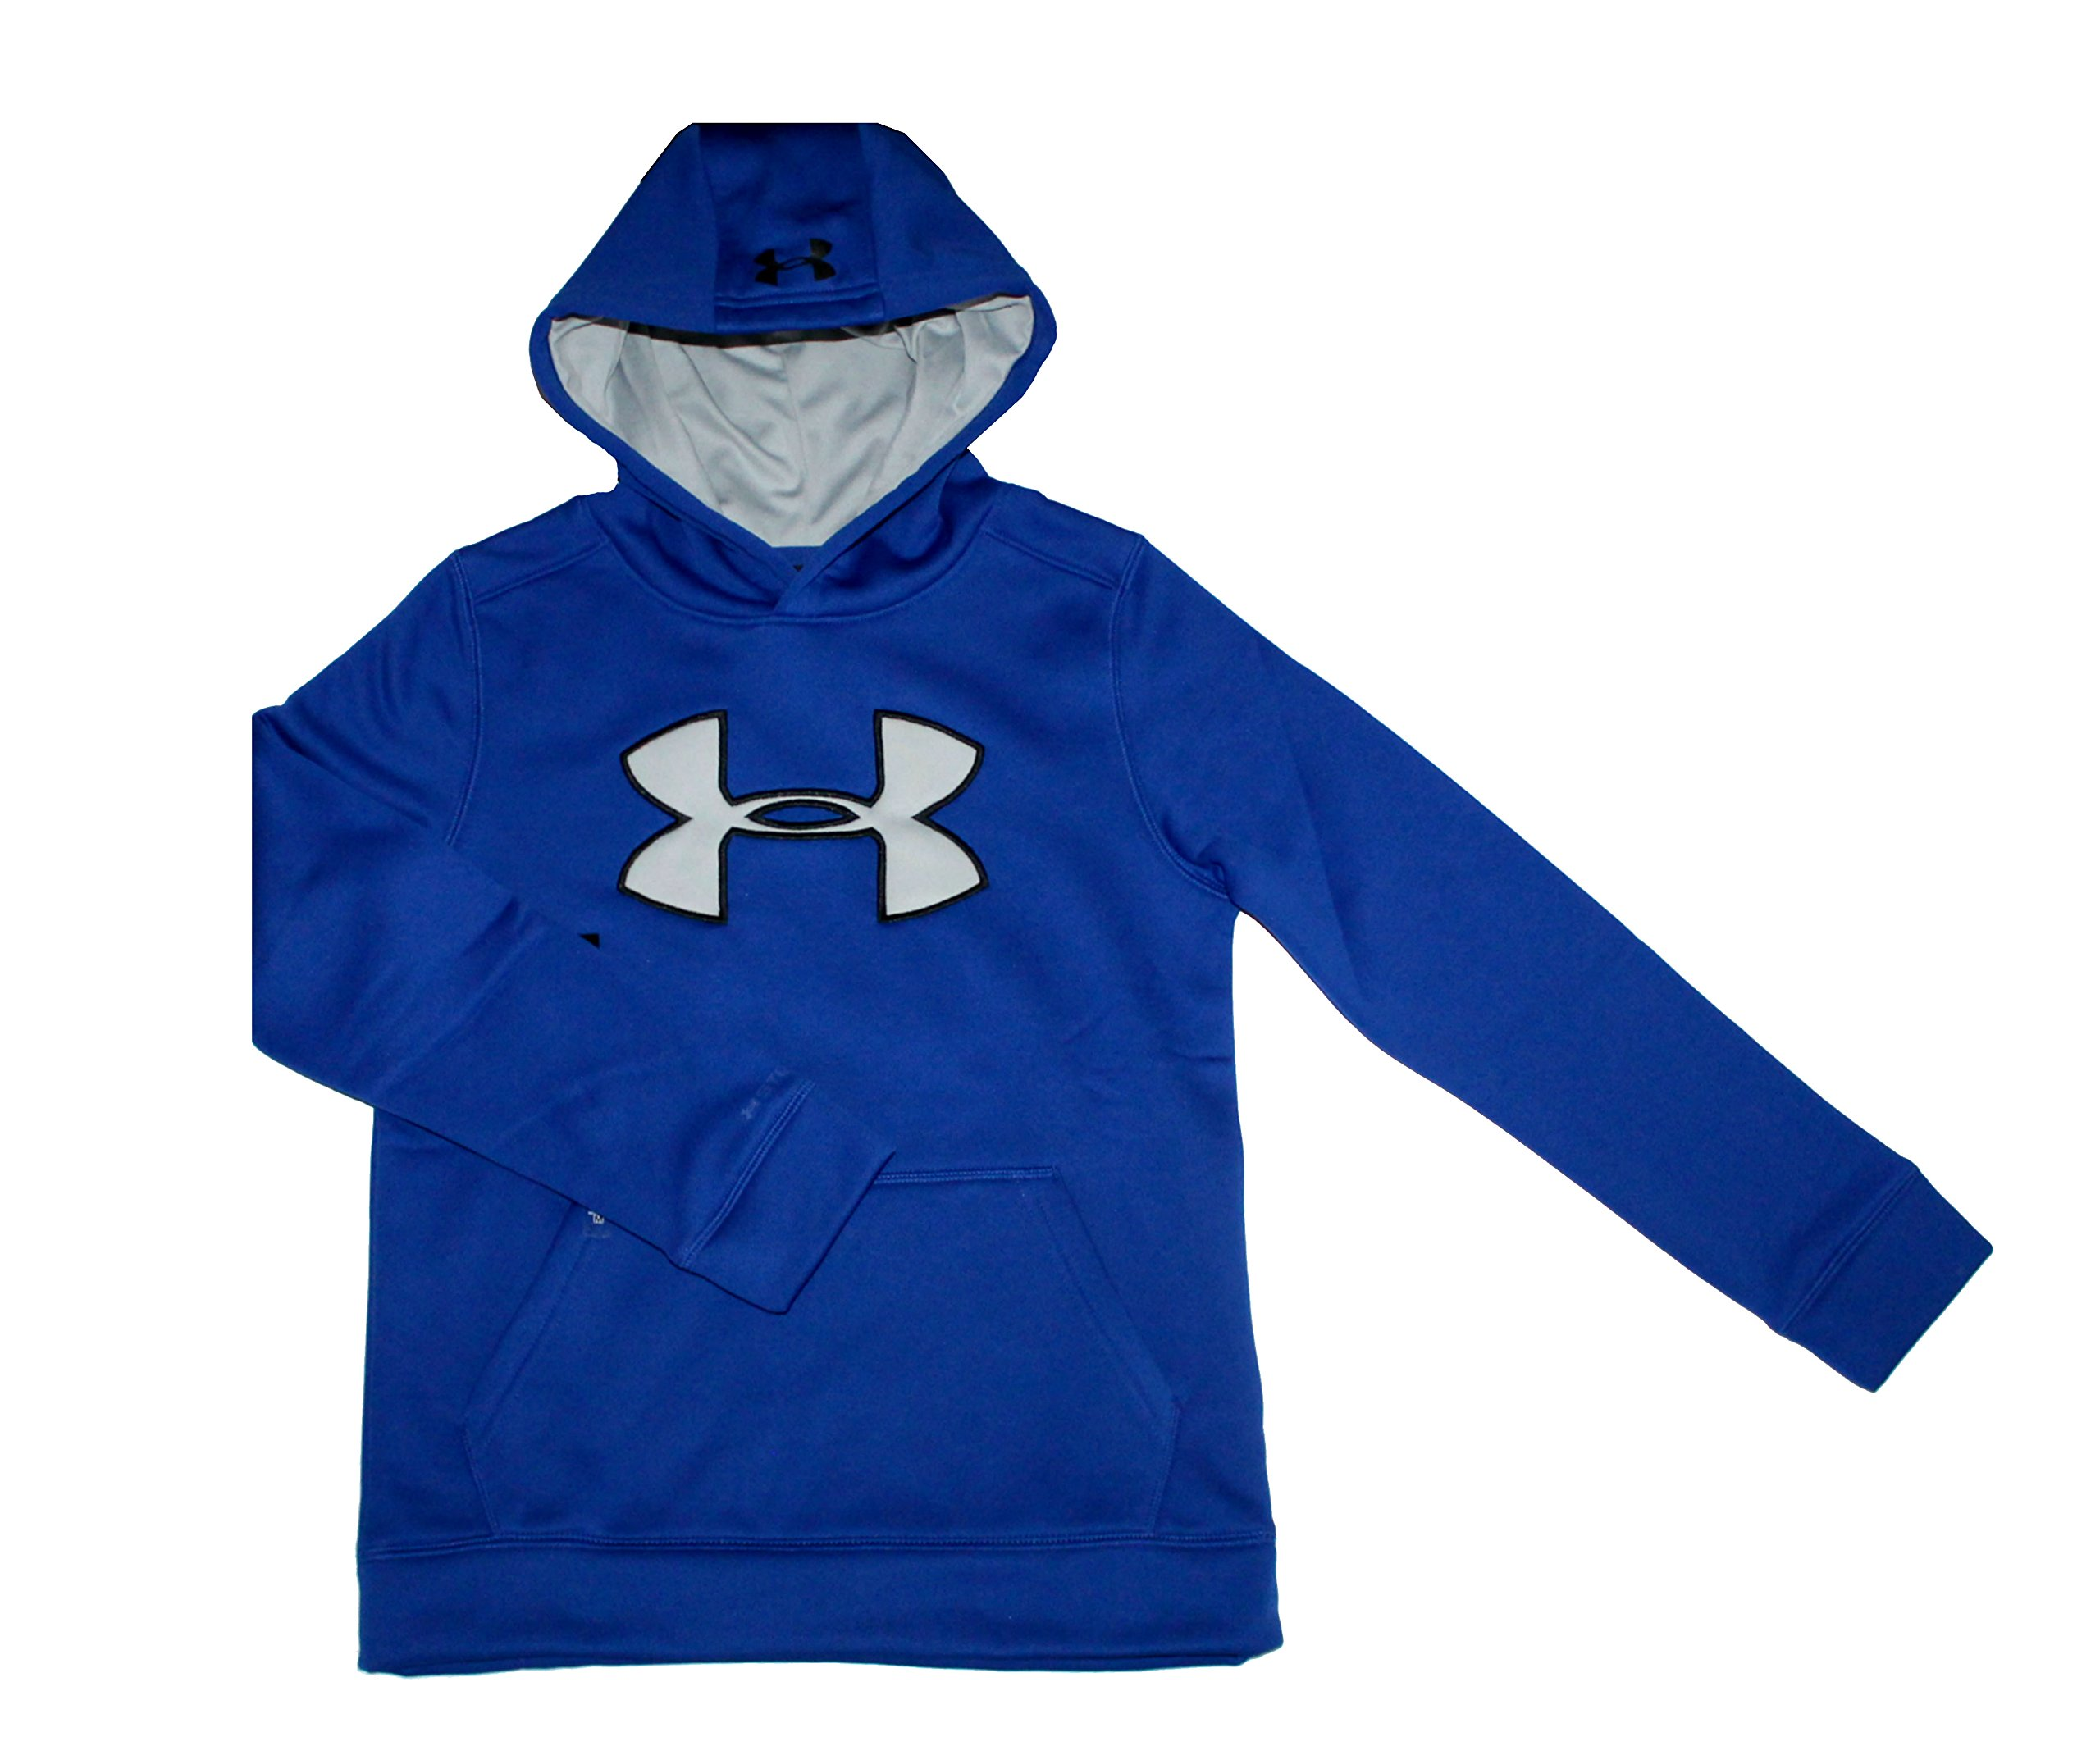 Under Armour Big Boys 8-18 Athletic Big Logo Storm Water resistant Hoodie Pullover, Royal Blue, S 8